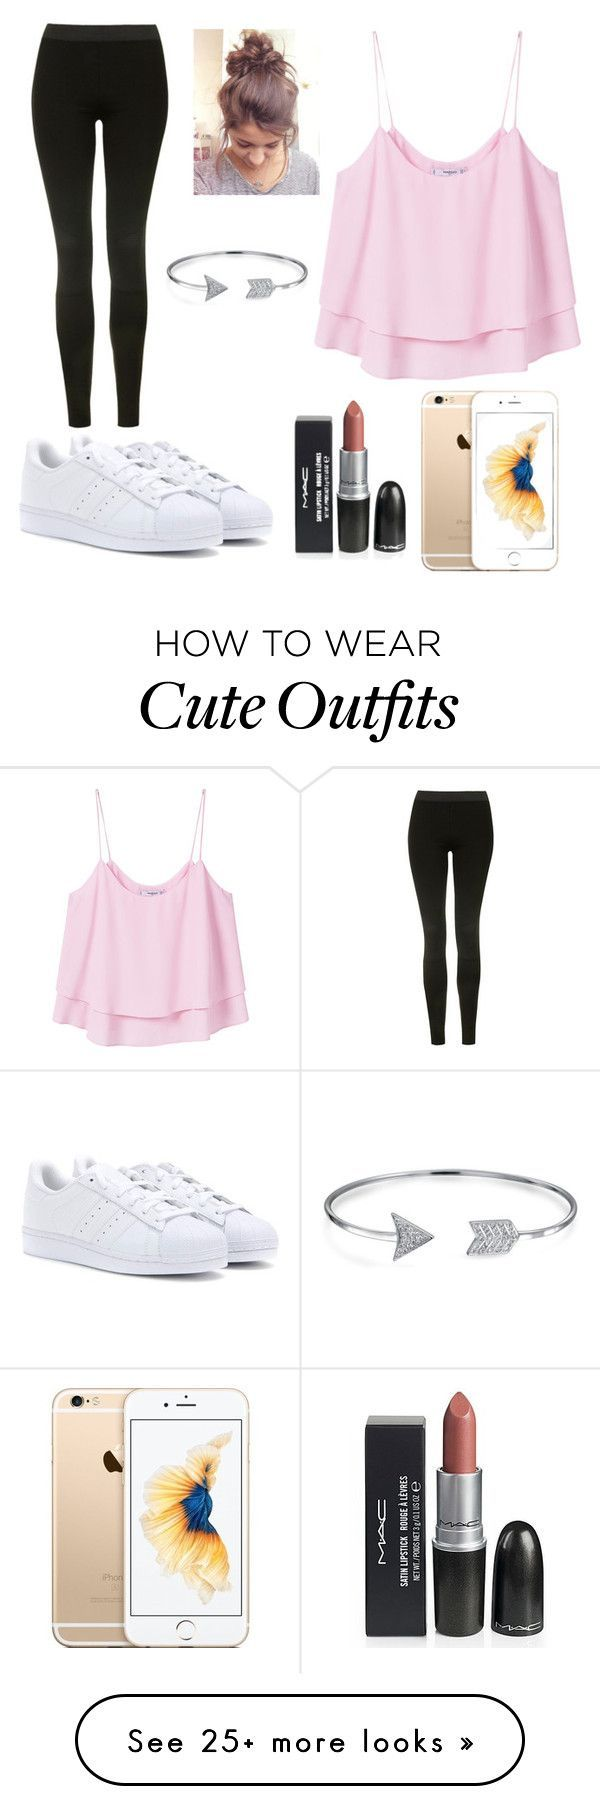 """Festival Outfit"" by mc1307 on Polyvore featuring MANGO, Topshop, adidas and Bling Jewelry"